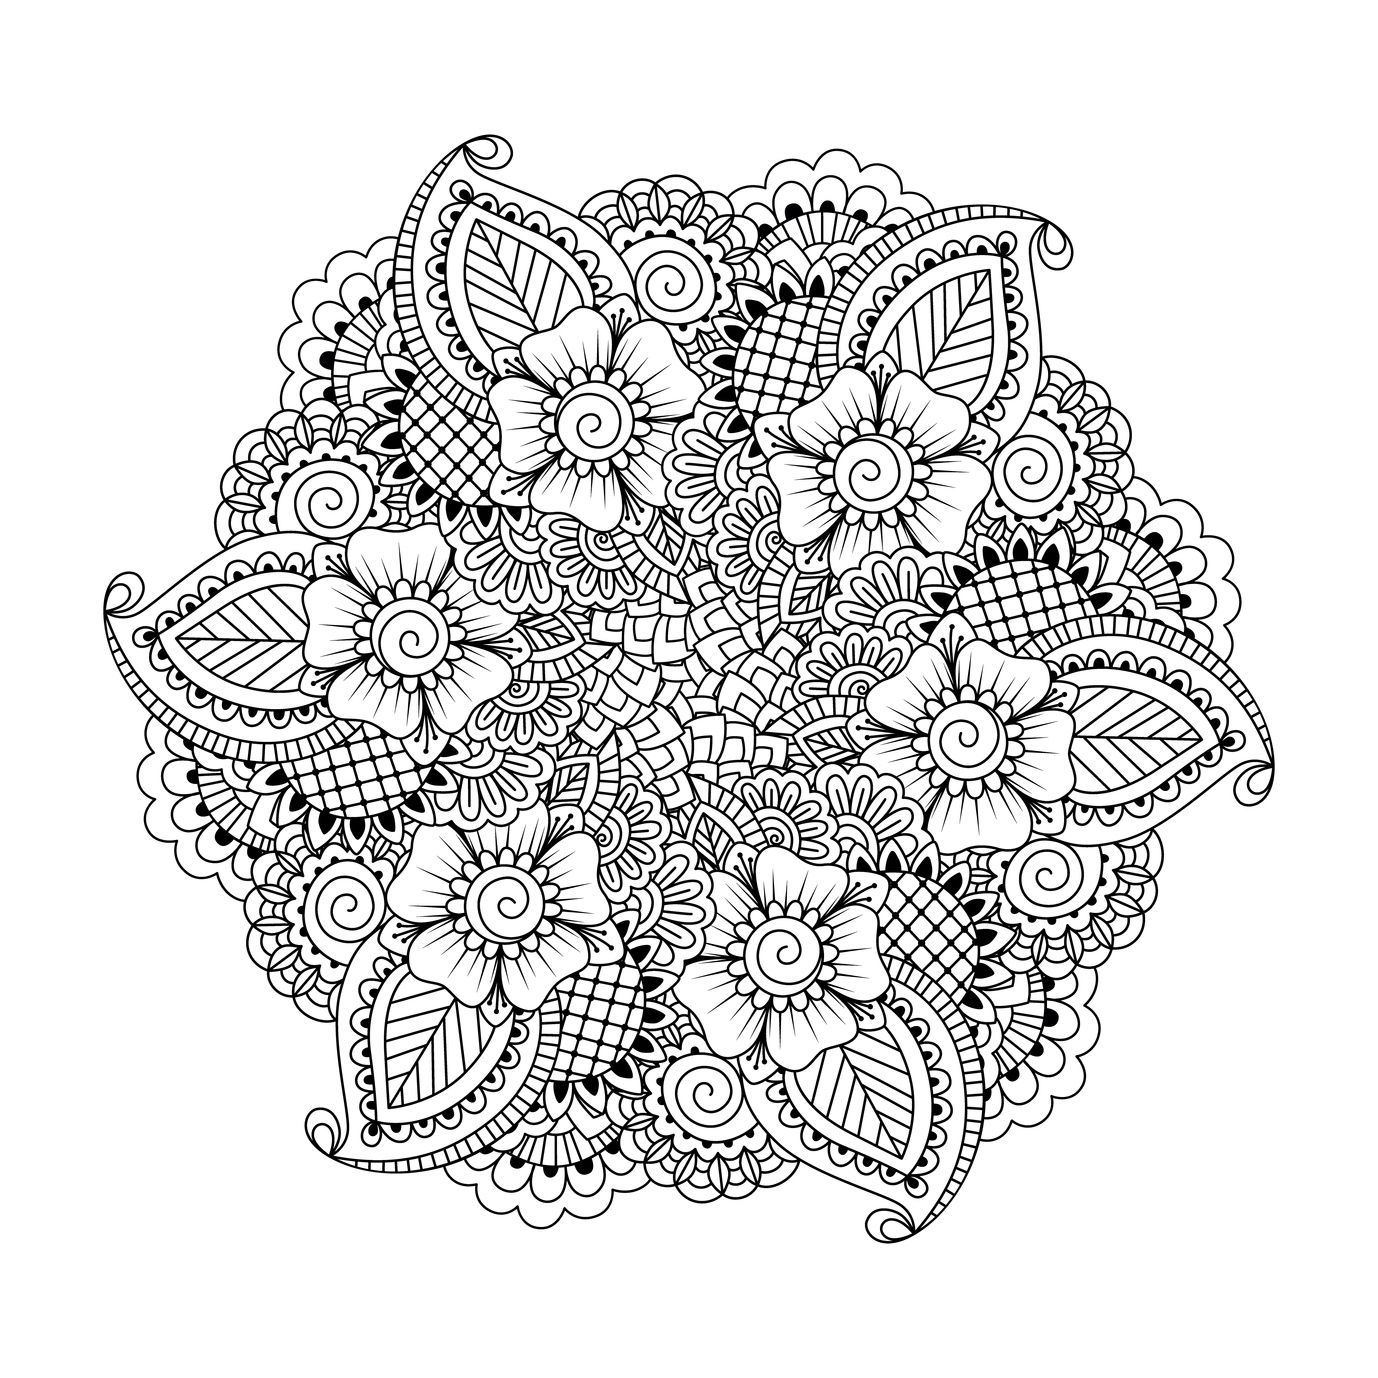 Stress relief coloring pages mandala - These Printable Abstract Coloring Pages Relieve Stress And Help You Meditate